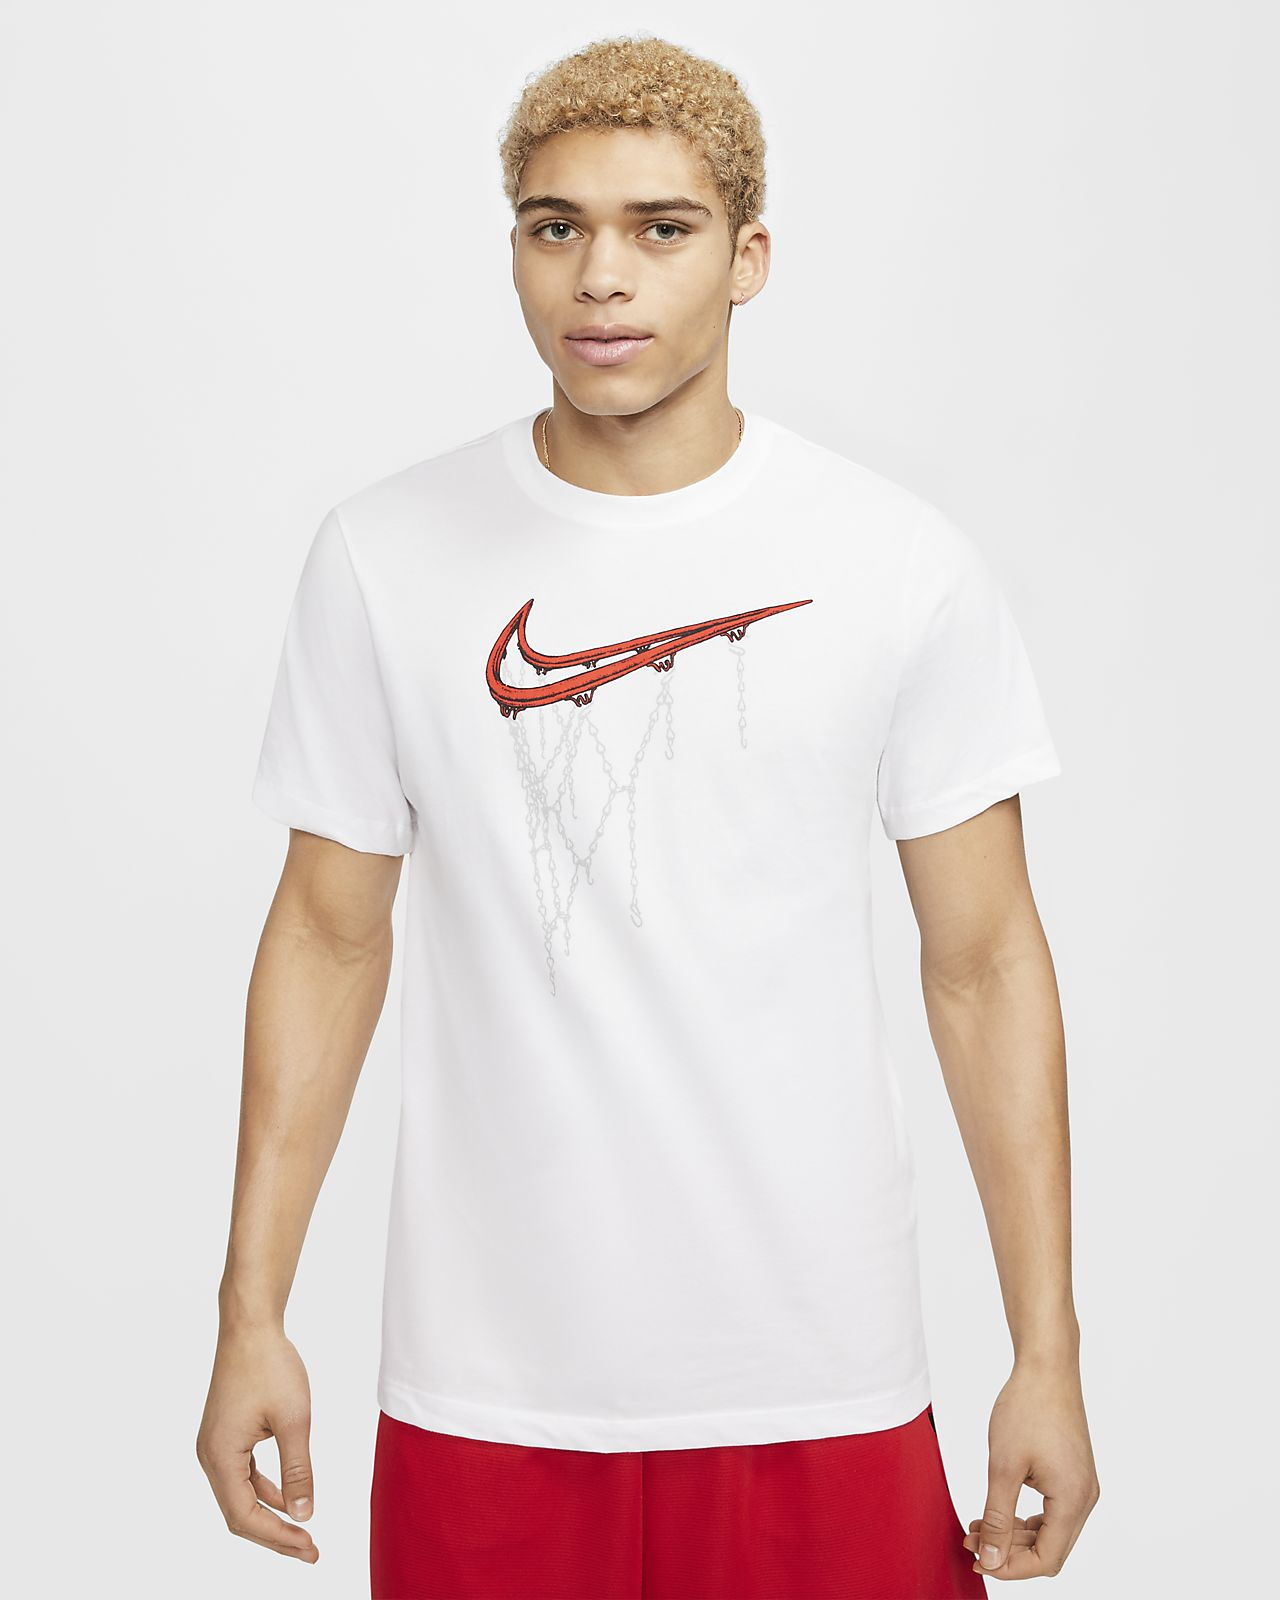 Nike Dri-FIT Swoosh Men's Basketball T-Shirt